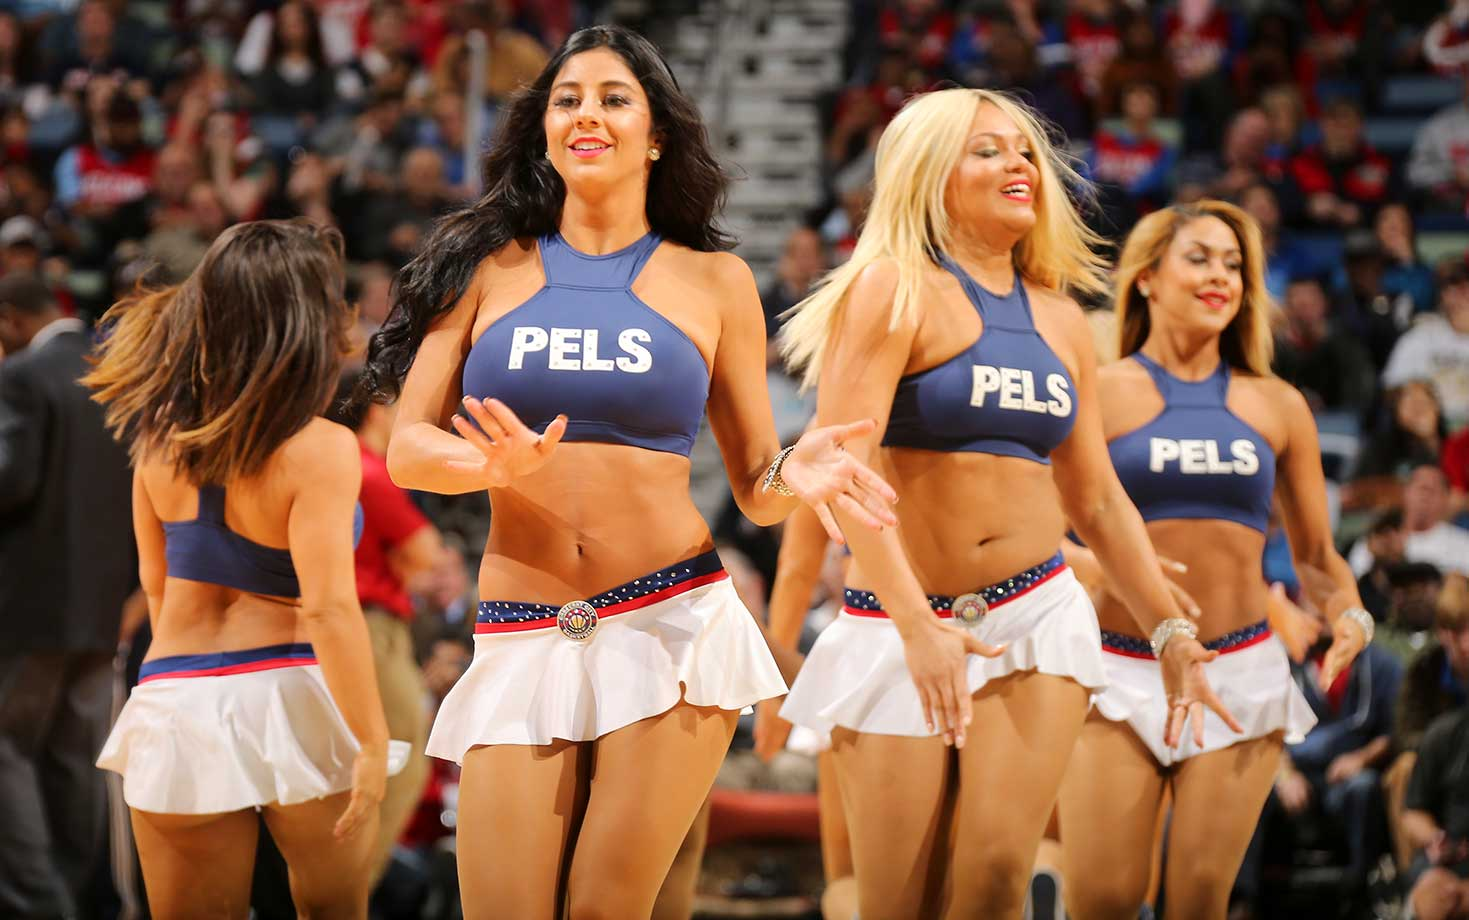 Dancers perform during the game between the Houston Rockets and New Orleans Pelicansat the Smoothie King Center in New Orleans.